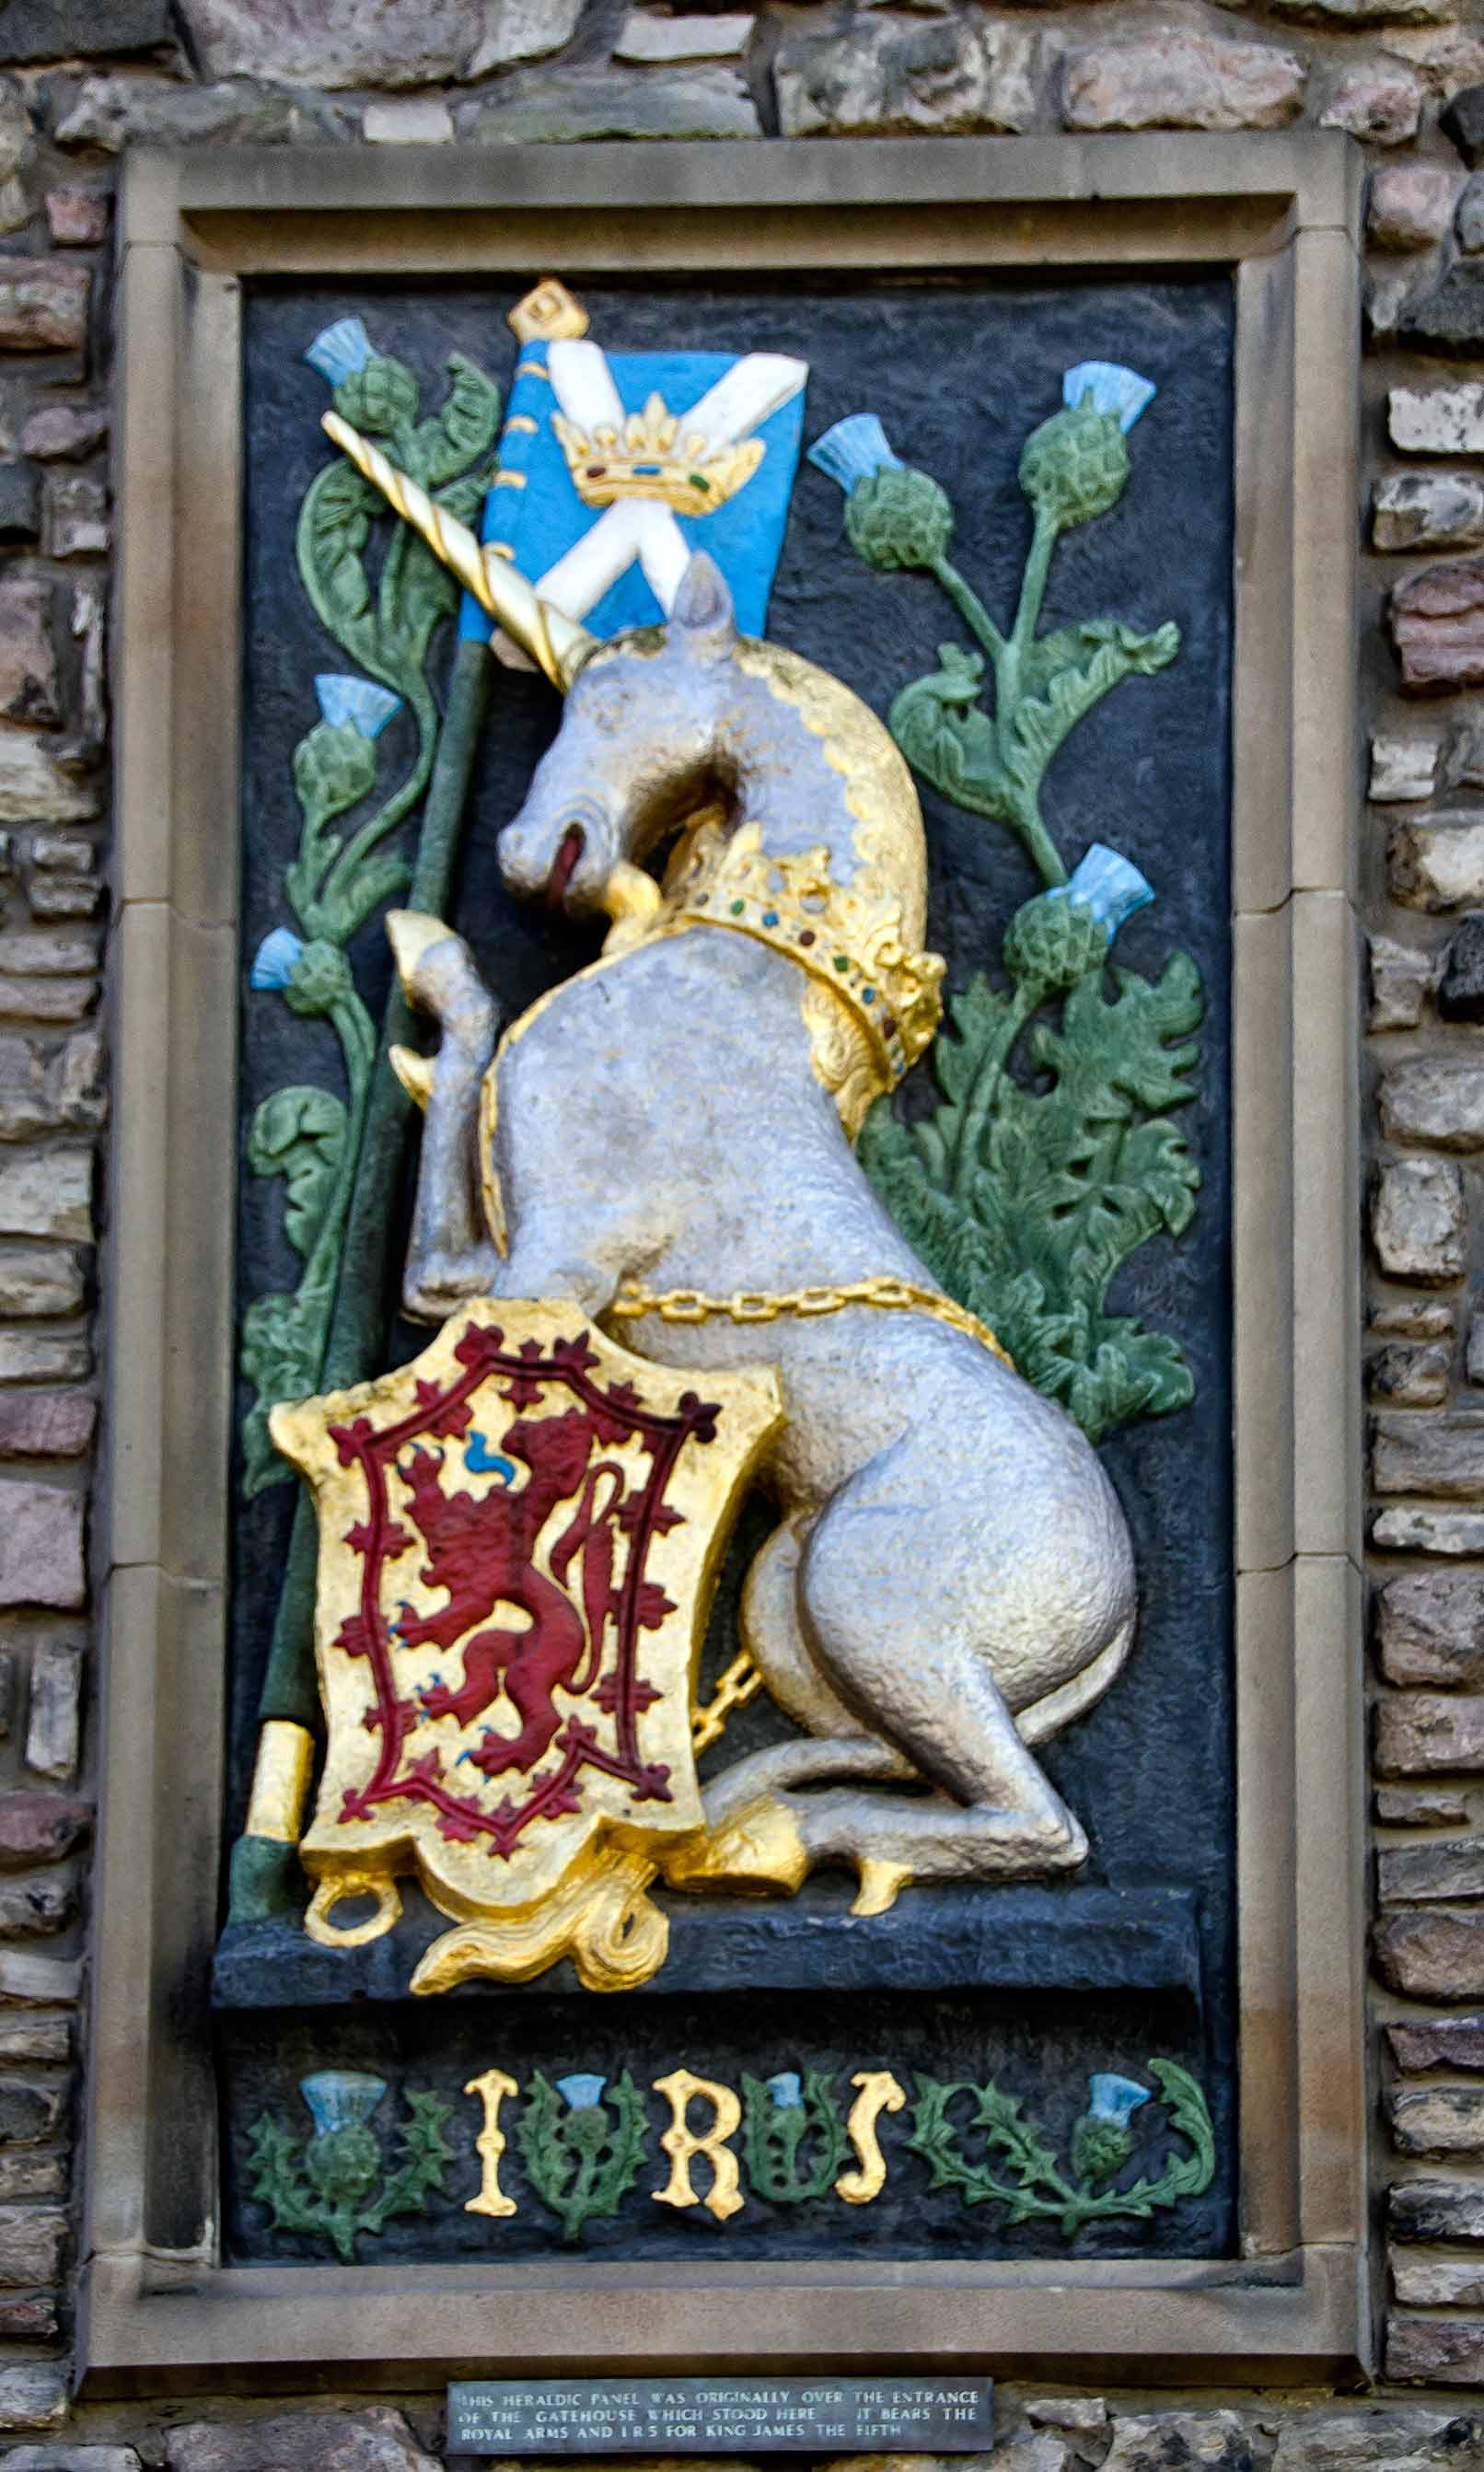 unicorn chains edinburgh Holyrood